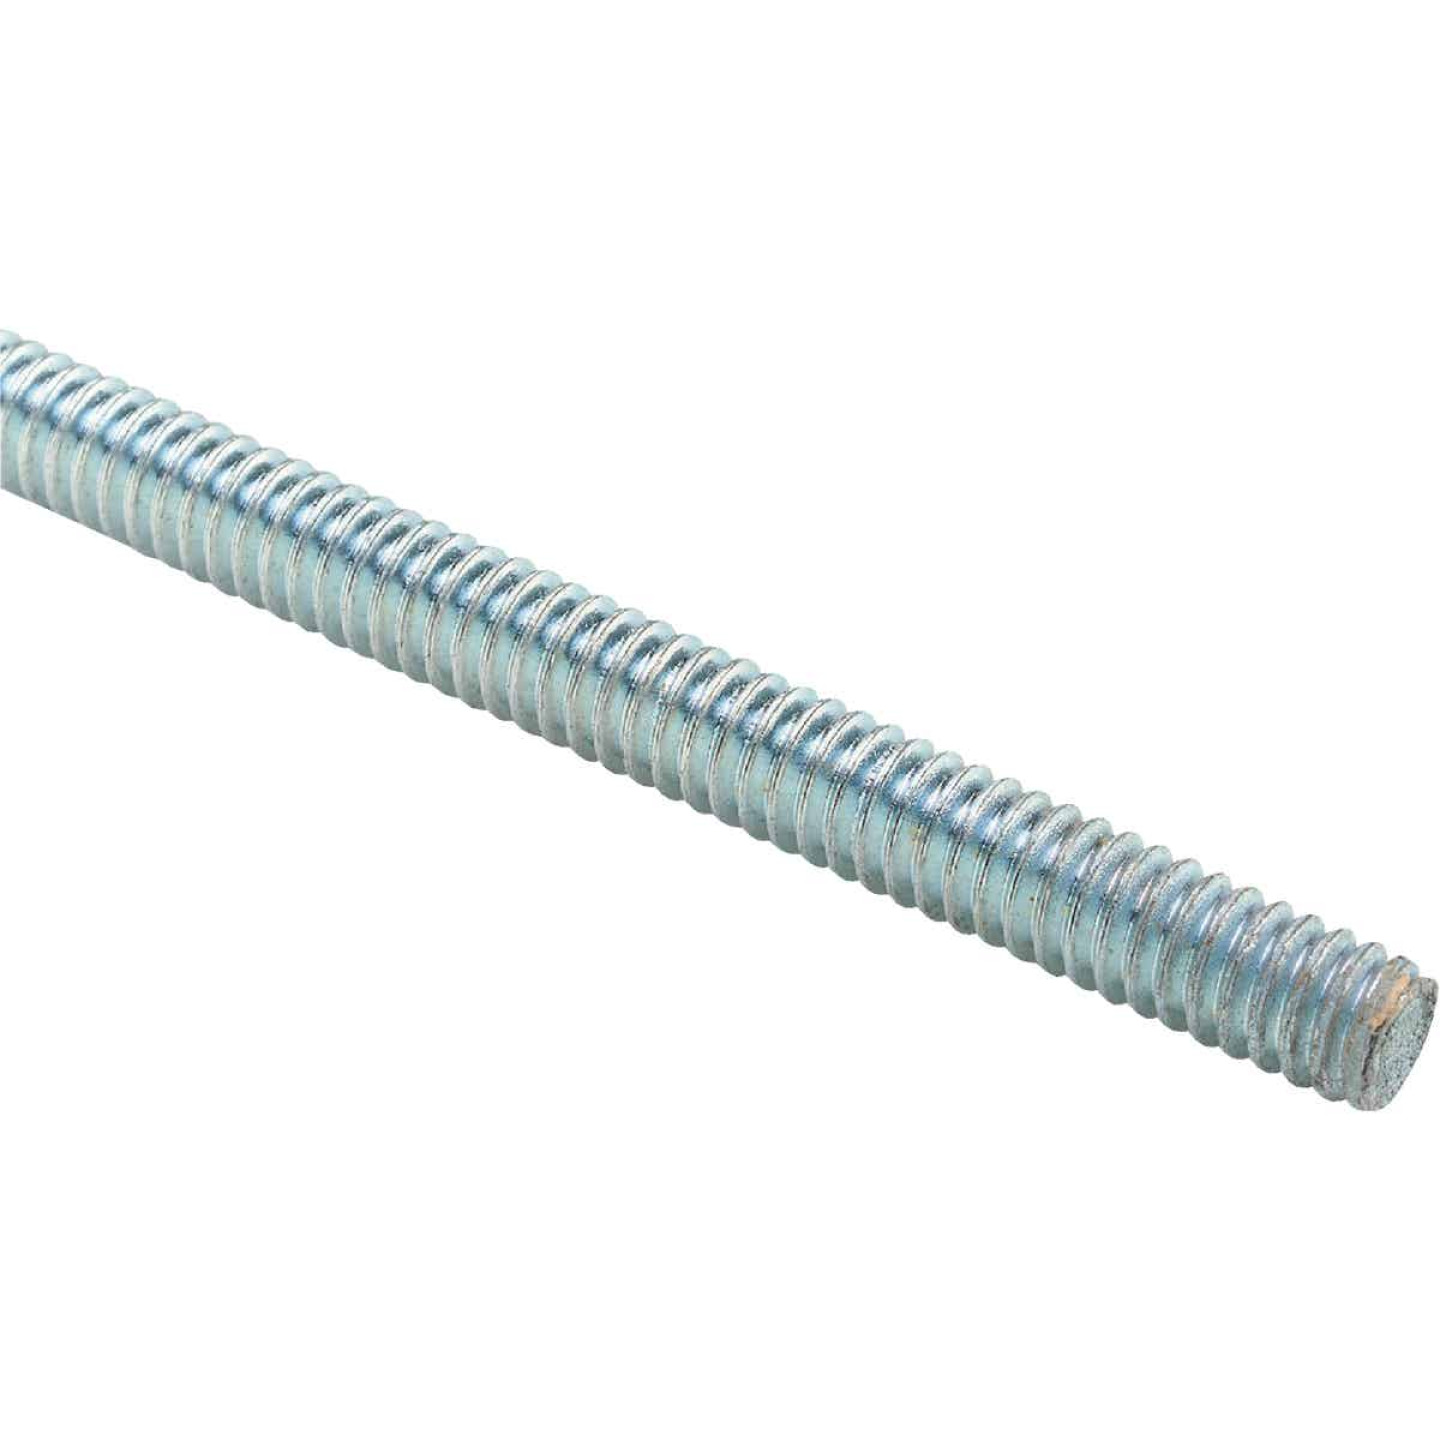 Superstrut 3/8 In.-16 x 10 Ft. Continuous Thread Threaded Rod Image 1